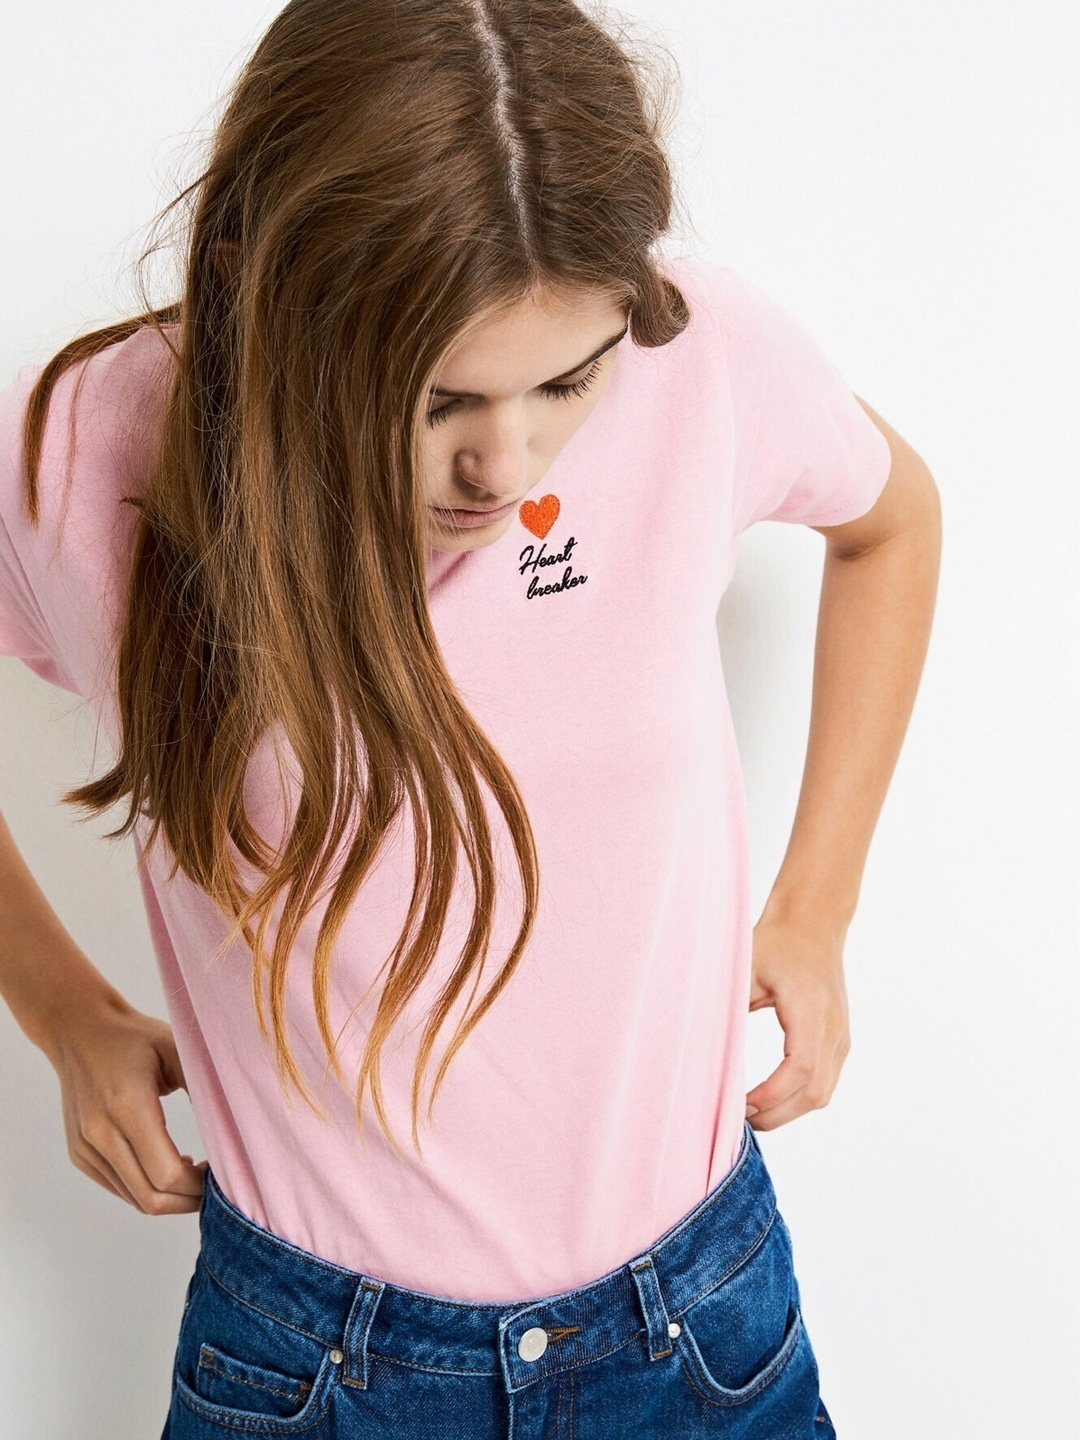 Women's tops & t-shirts - ENVII photo 2